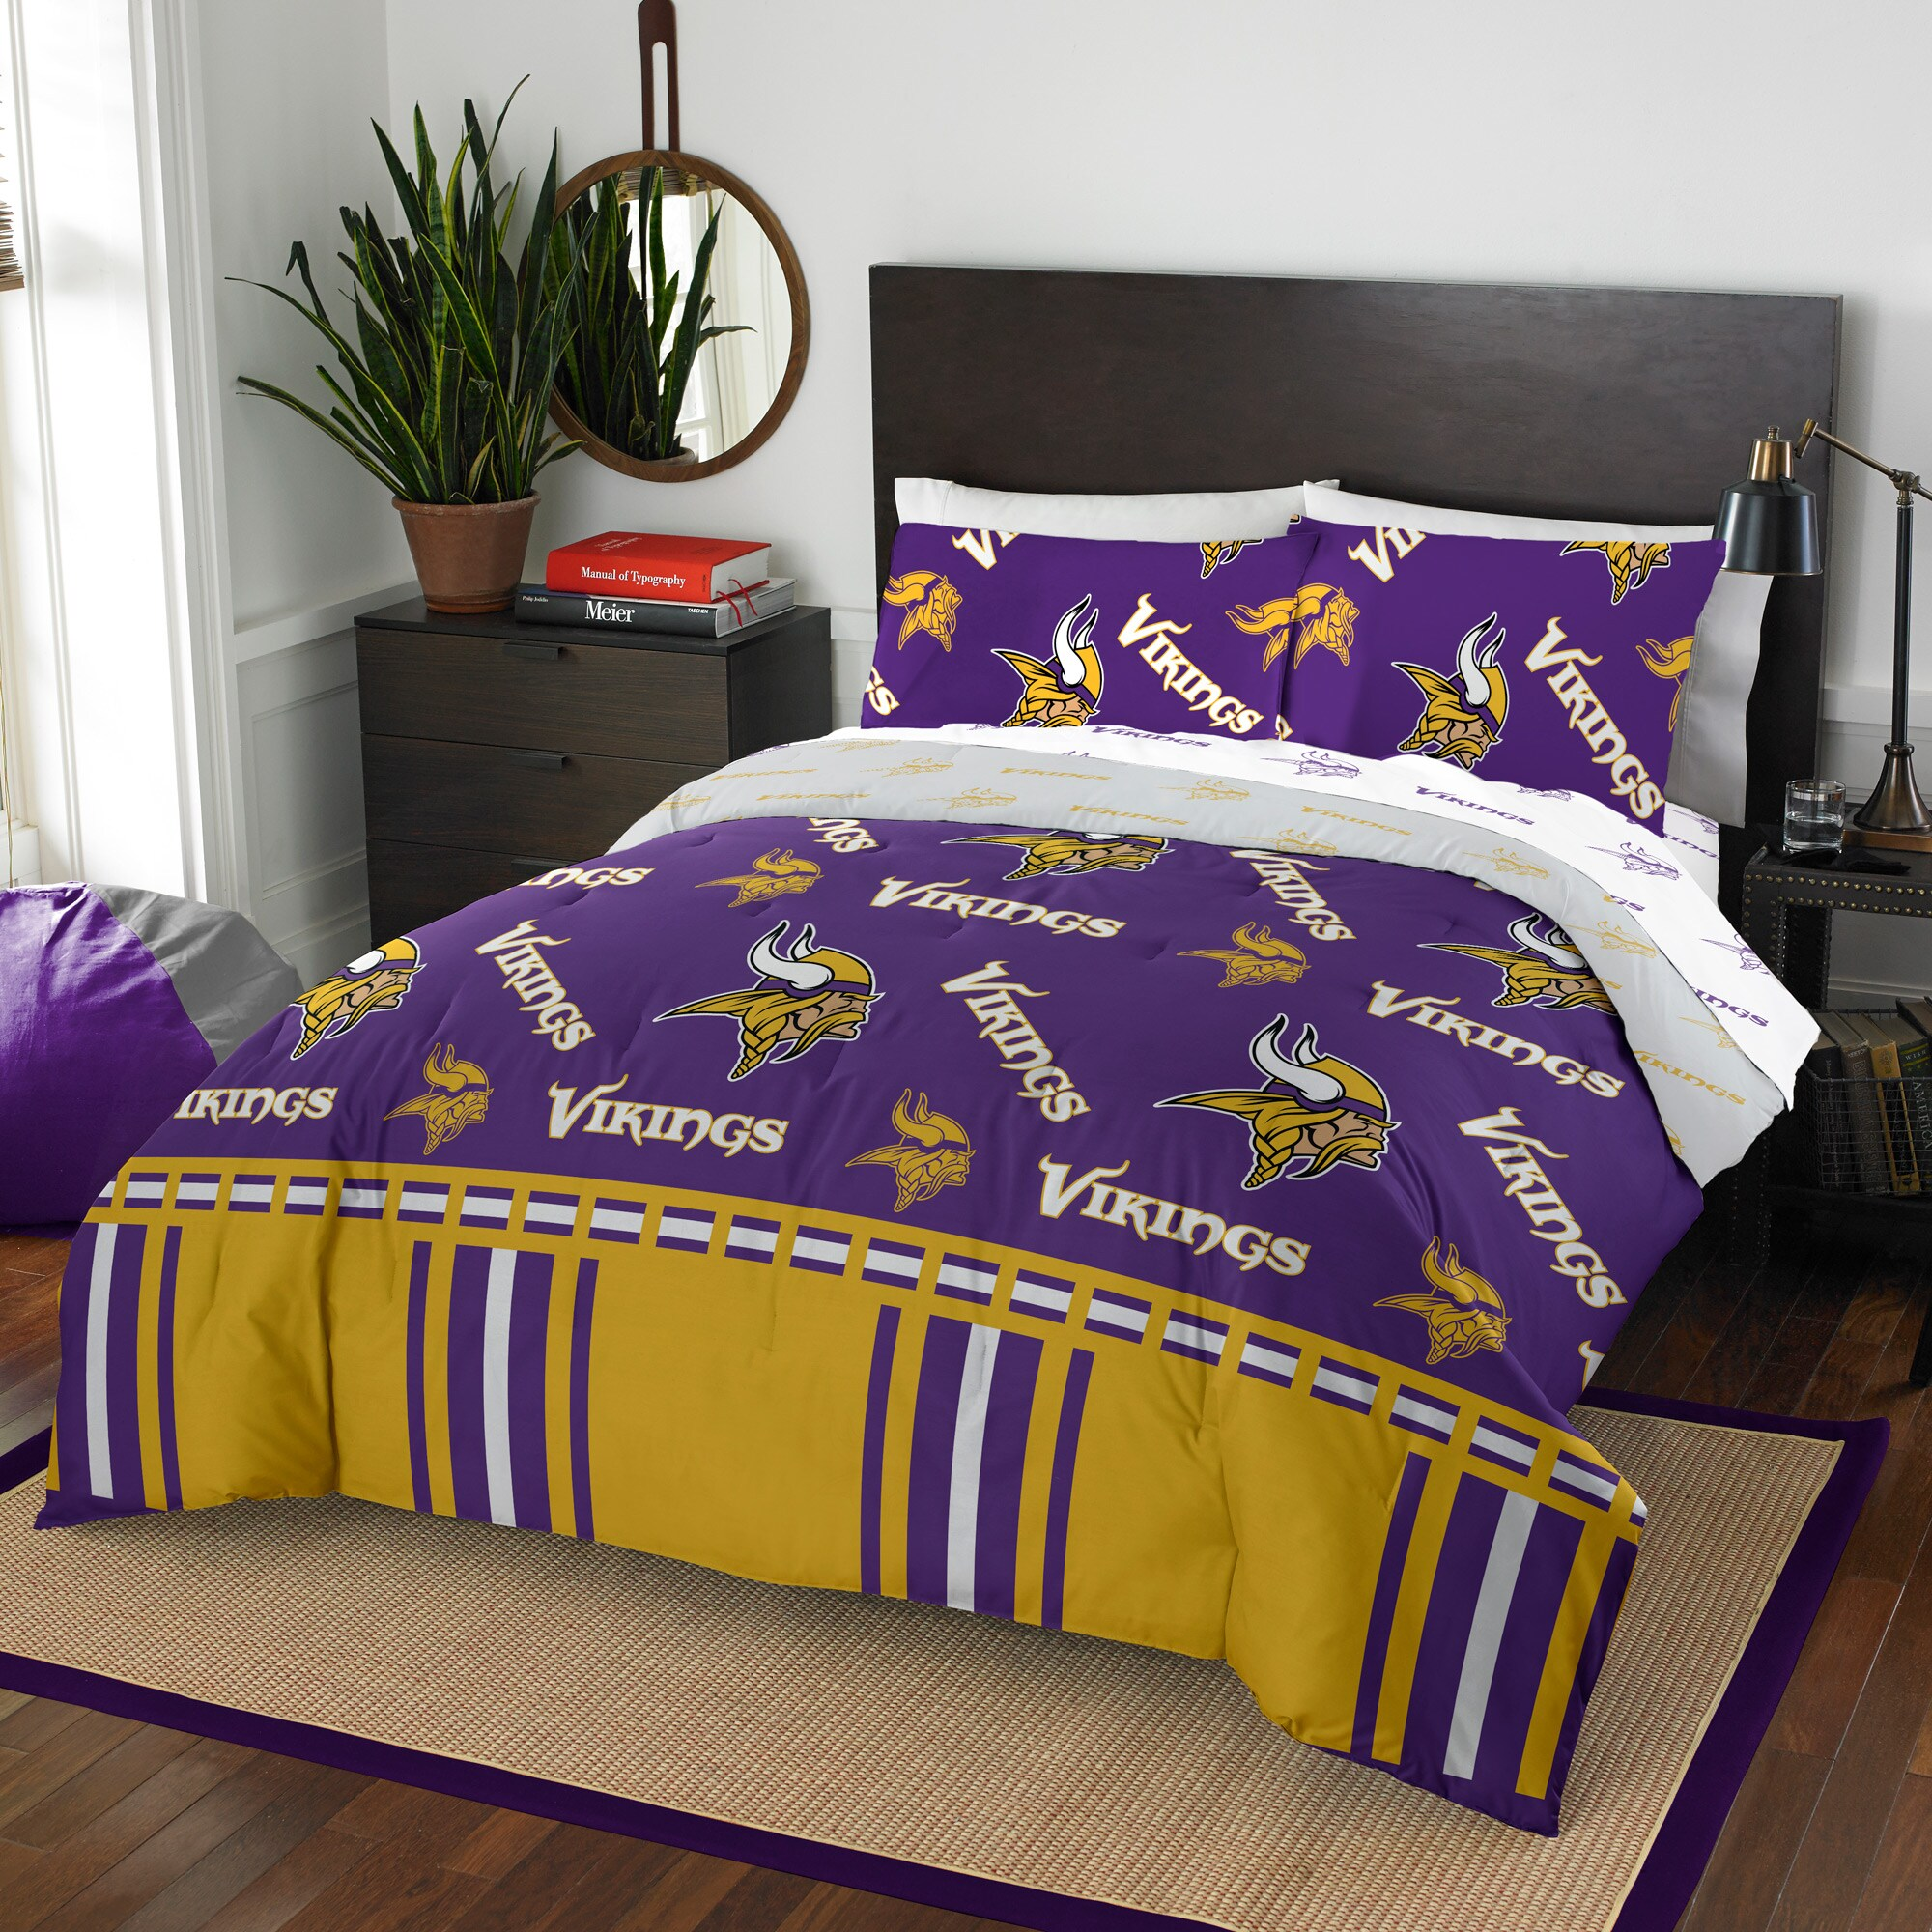 Minnesota Vikings The Northwest Company 5-Piece Queen Bed in a Bag Set